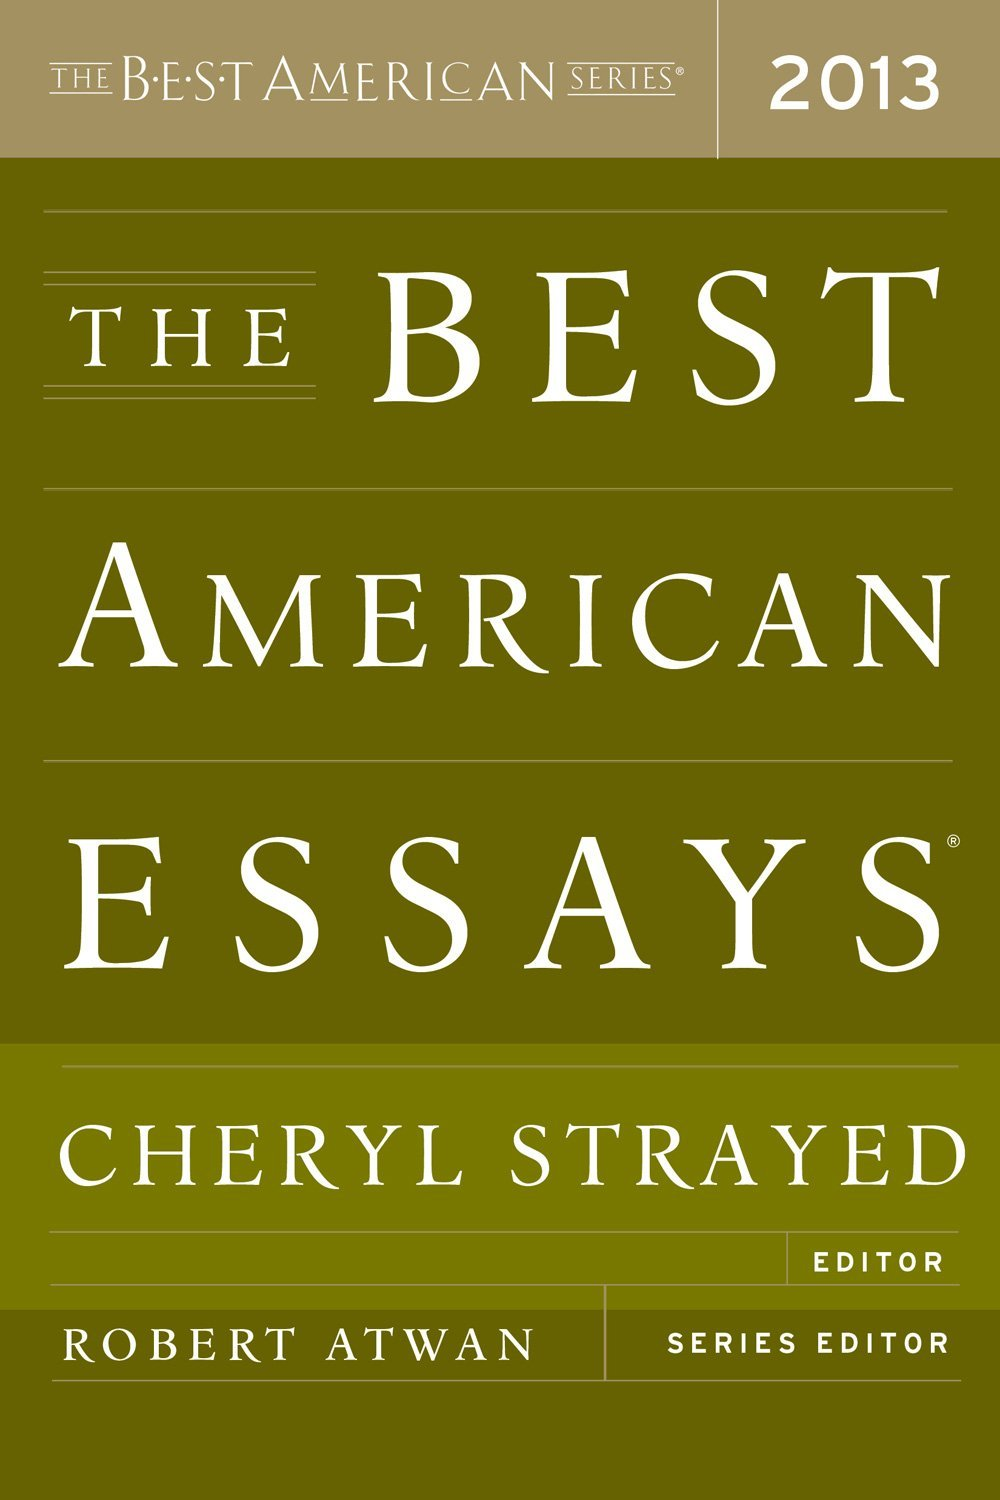 american essays american essays compucenter american essays review the best american essays columbia journal